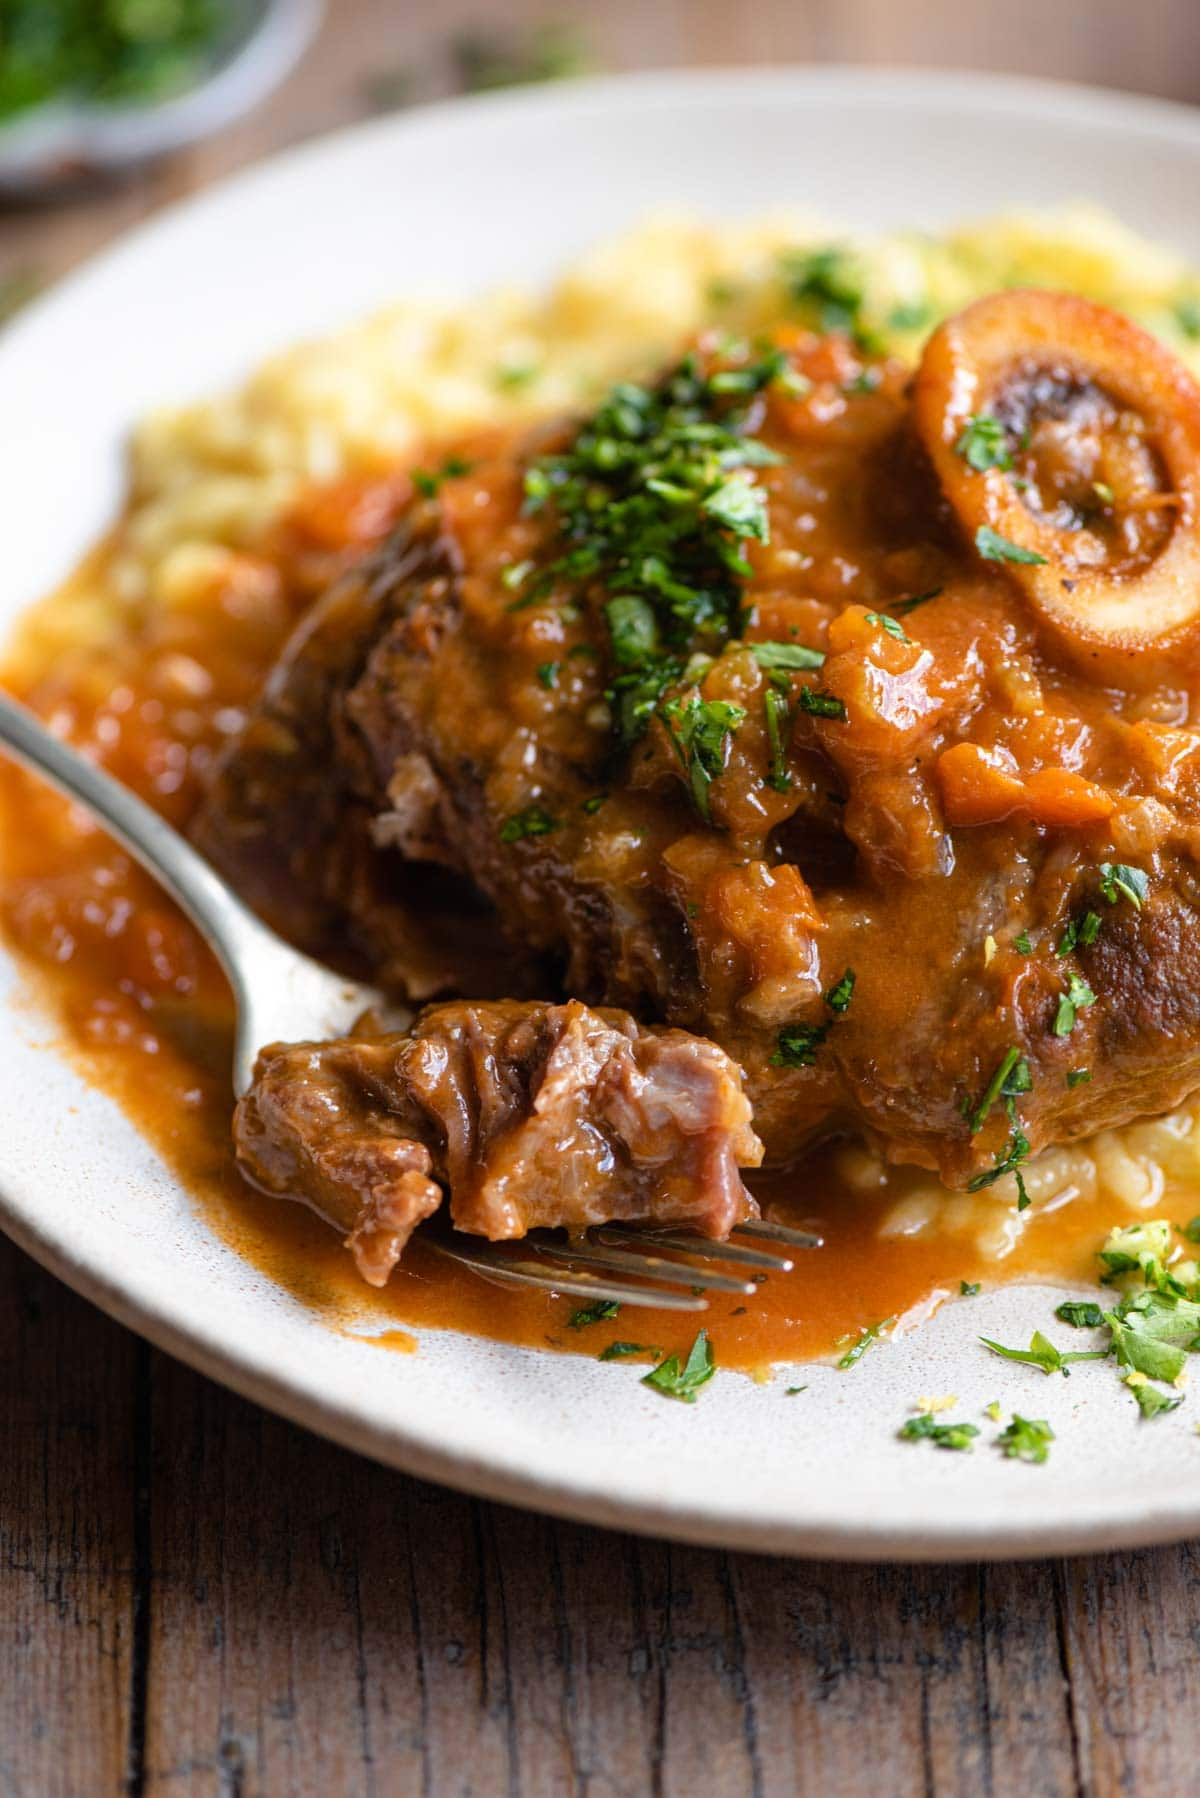 A close up of a piece of osso bucco on a fork with sauce